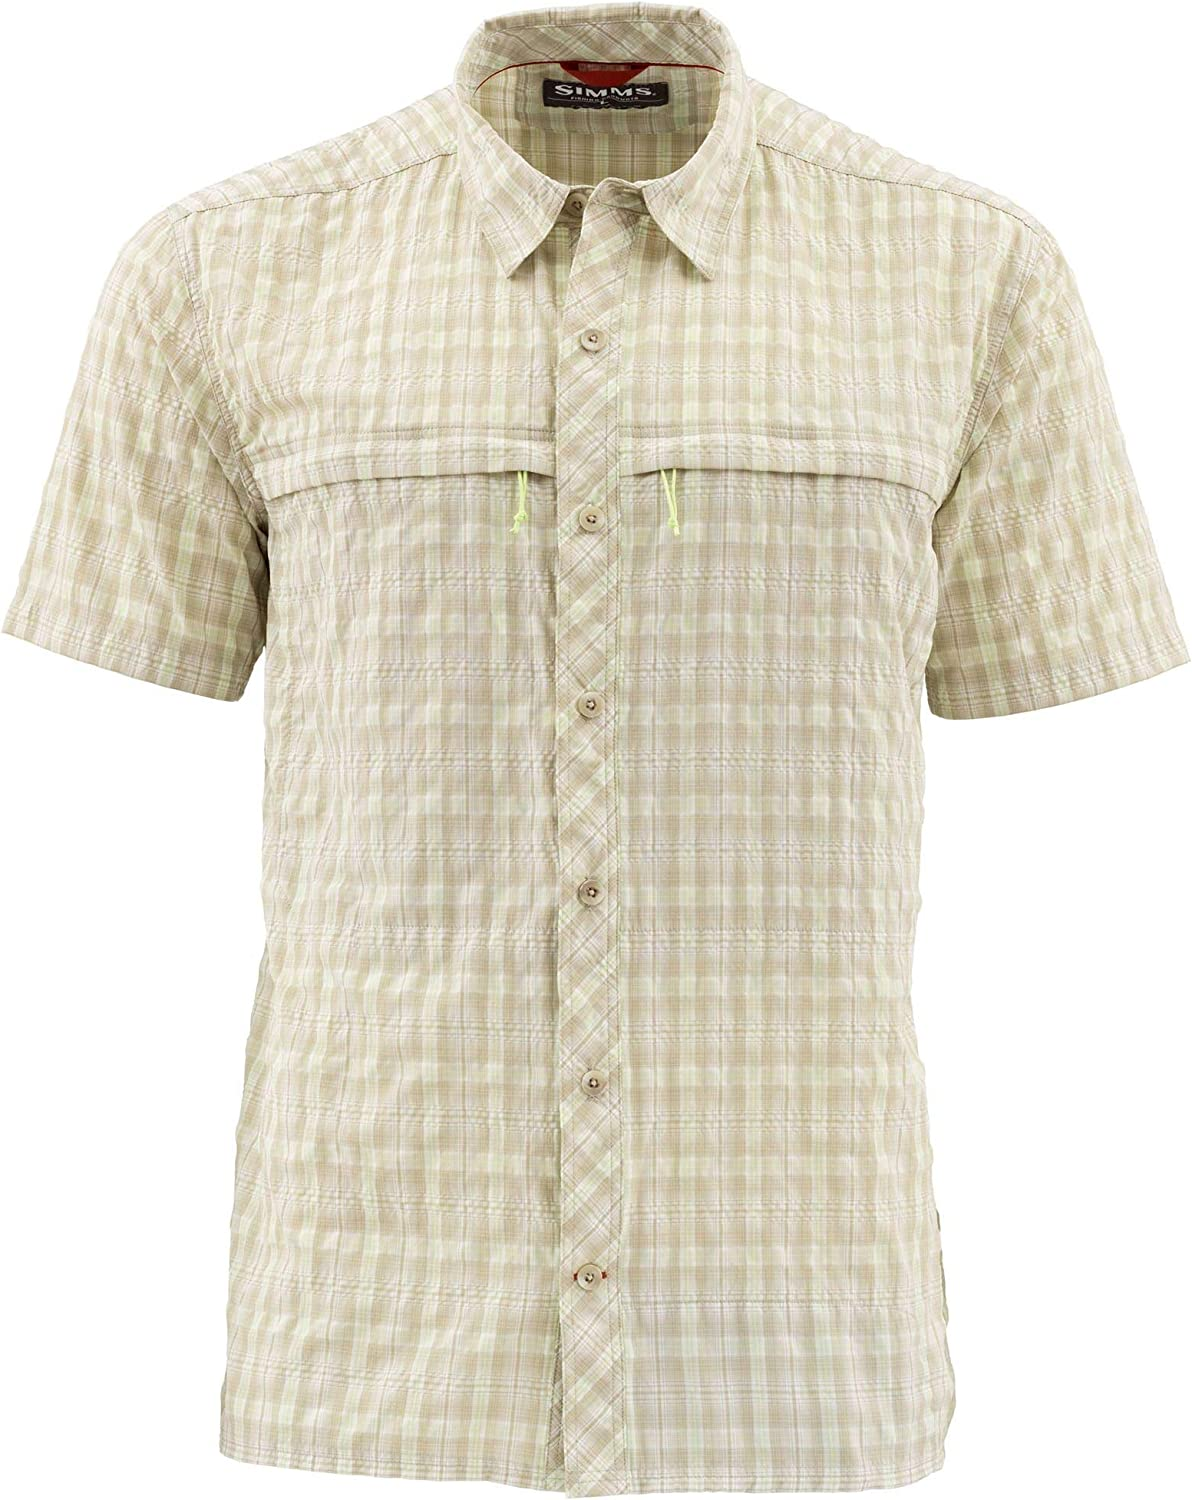 Reservation Simms Men's UPF 30+ Stone Fishing Cold Shirt Cooling Free shipping on posting reviews